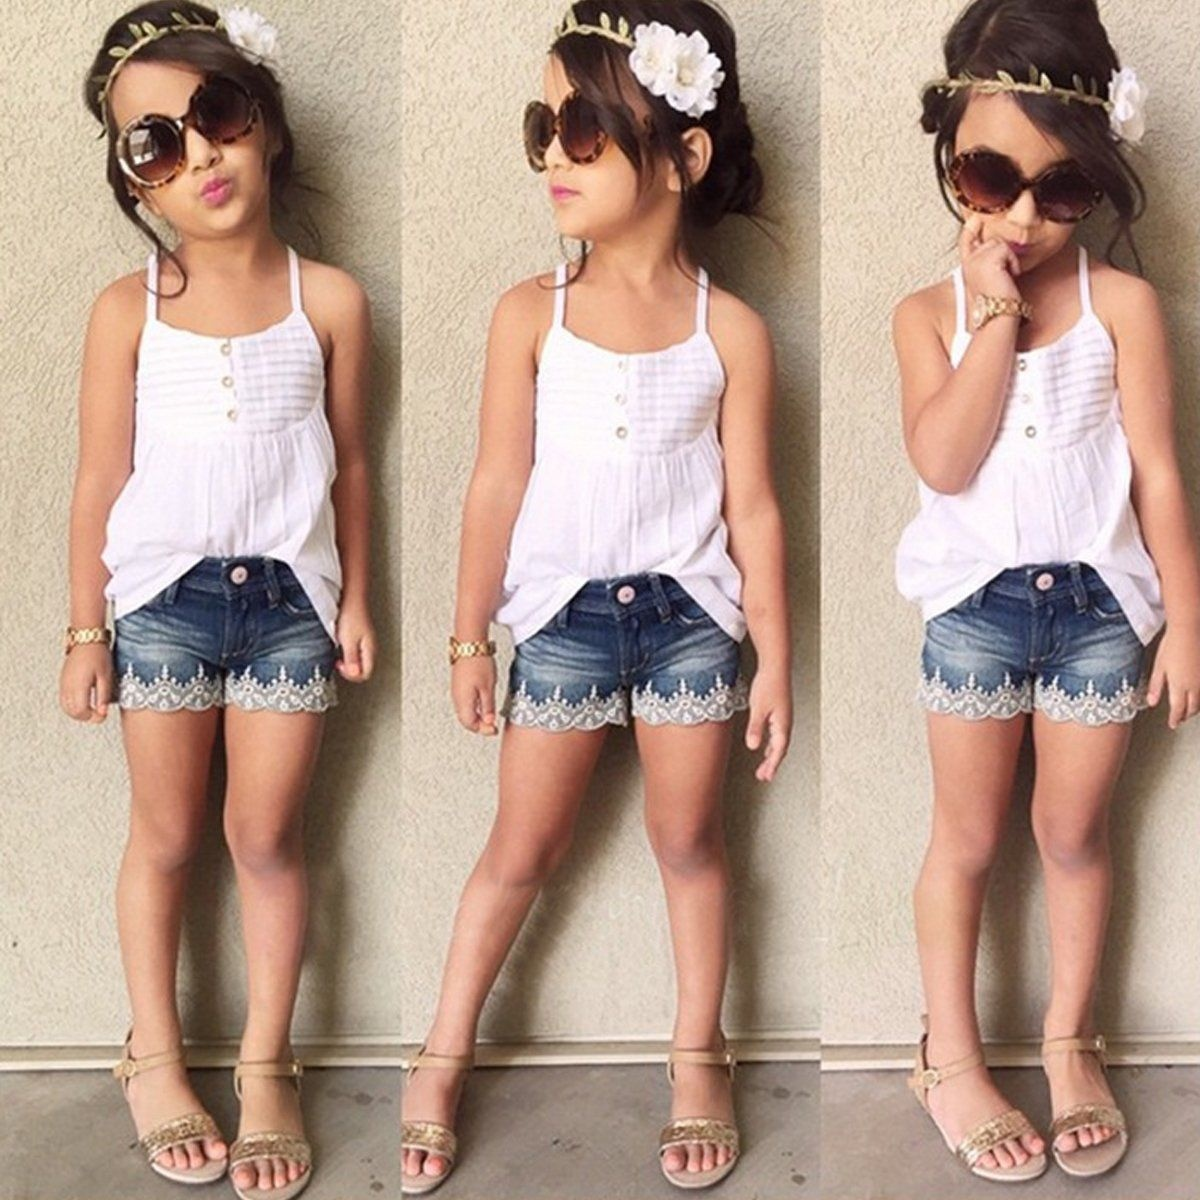 Okolady 2017 New Fashion Kids Clothing Sets Toddler Baby Girls Tank Top T-shirt Dress+Jeans Pants Clothes Outfits Set off shoulder tops t shirts denim pants hole jeans 3pcs outfits set clothing fashion baby kids girls clothes sets